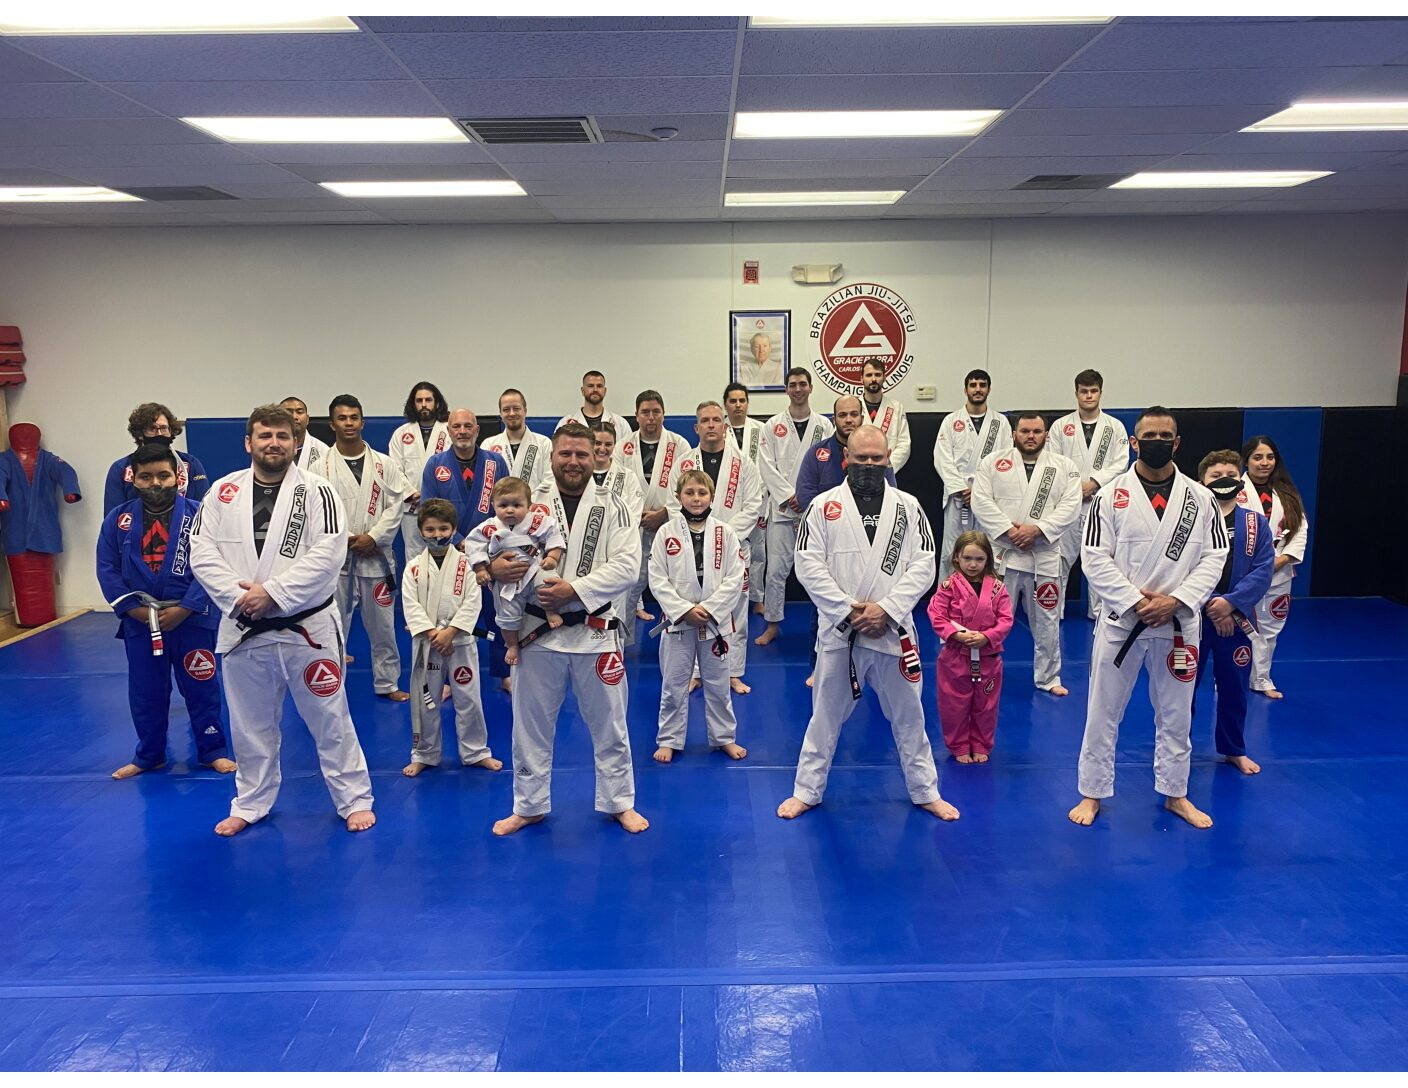 AMAZING SEMINAR WITH PROFESSOR MARCOS BARROS